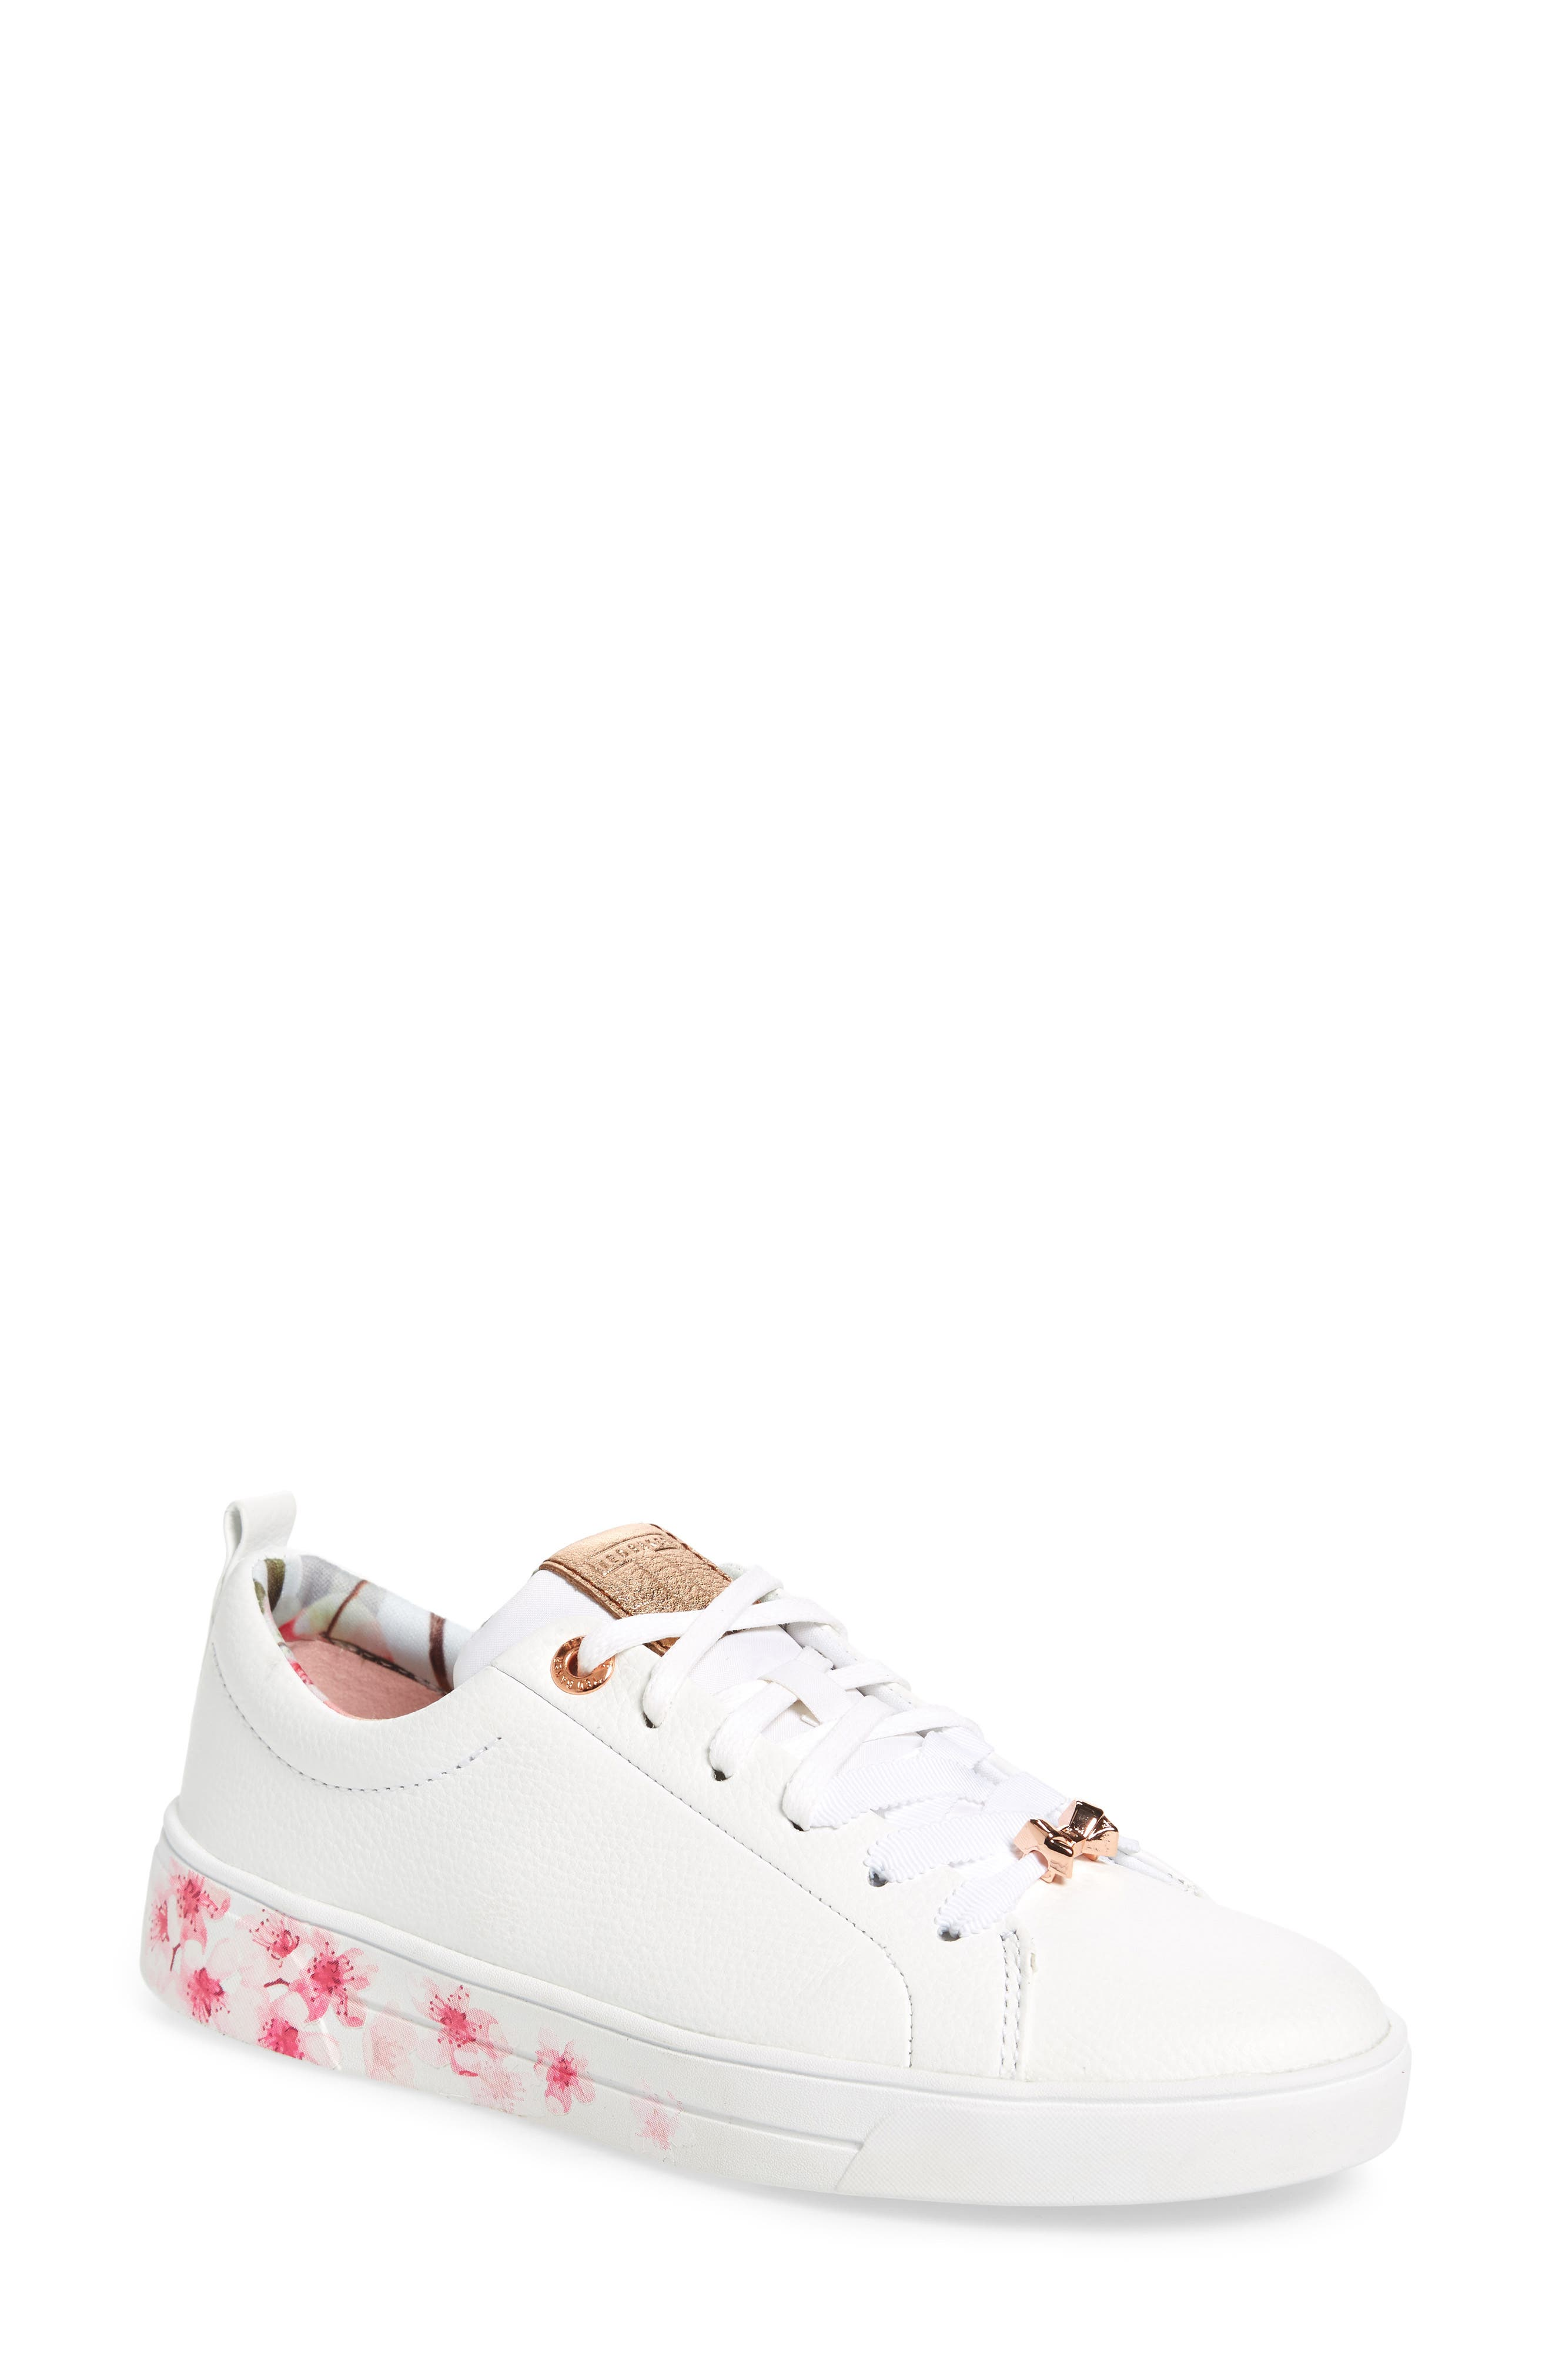 Ted Baker Women's Kelleip Leather Lace Up Platform Sneakers Y8cFetzSM9